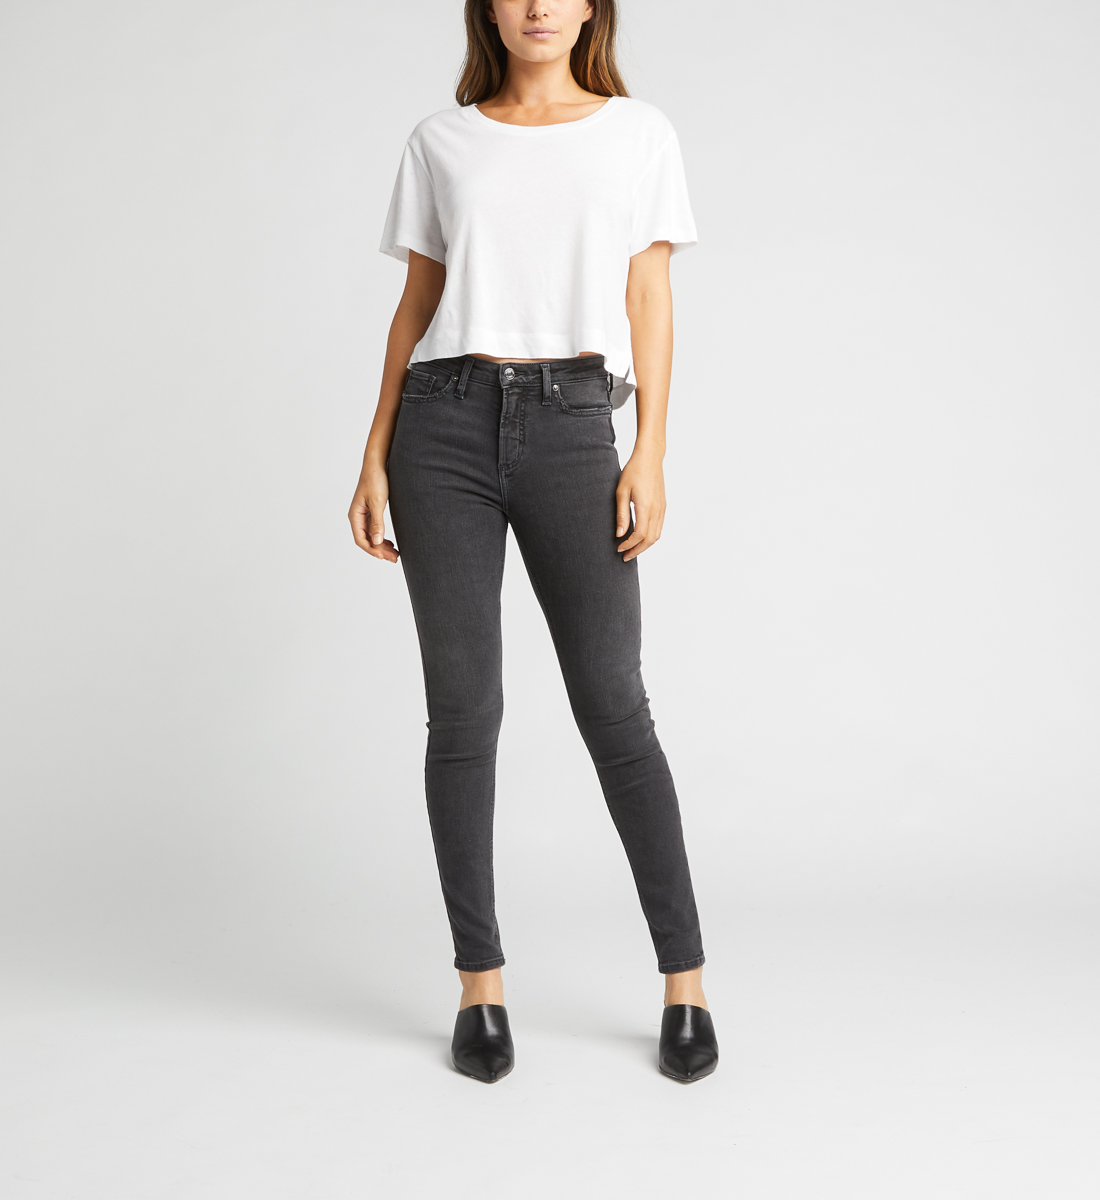 High Note High Rise Skinny Jeans Alt Image 1